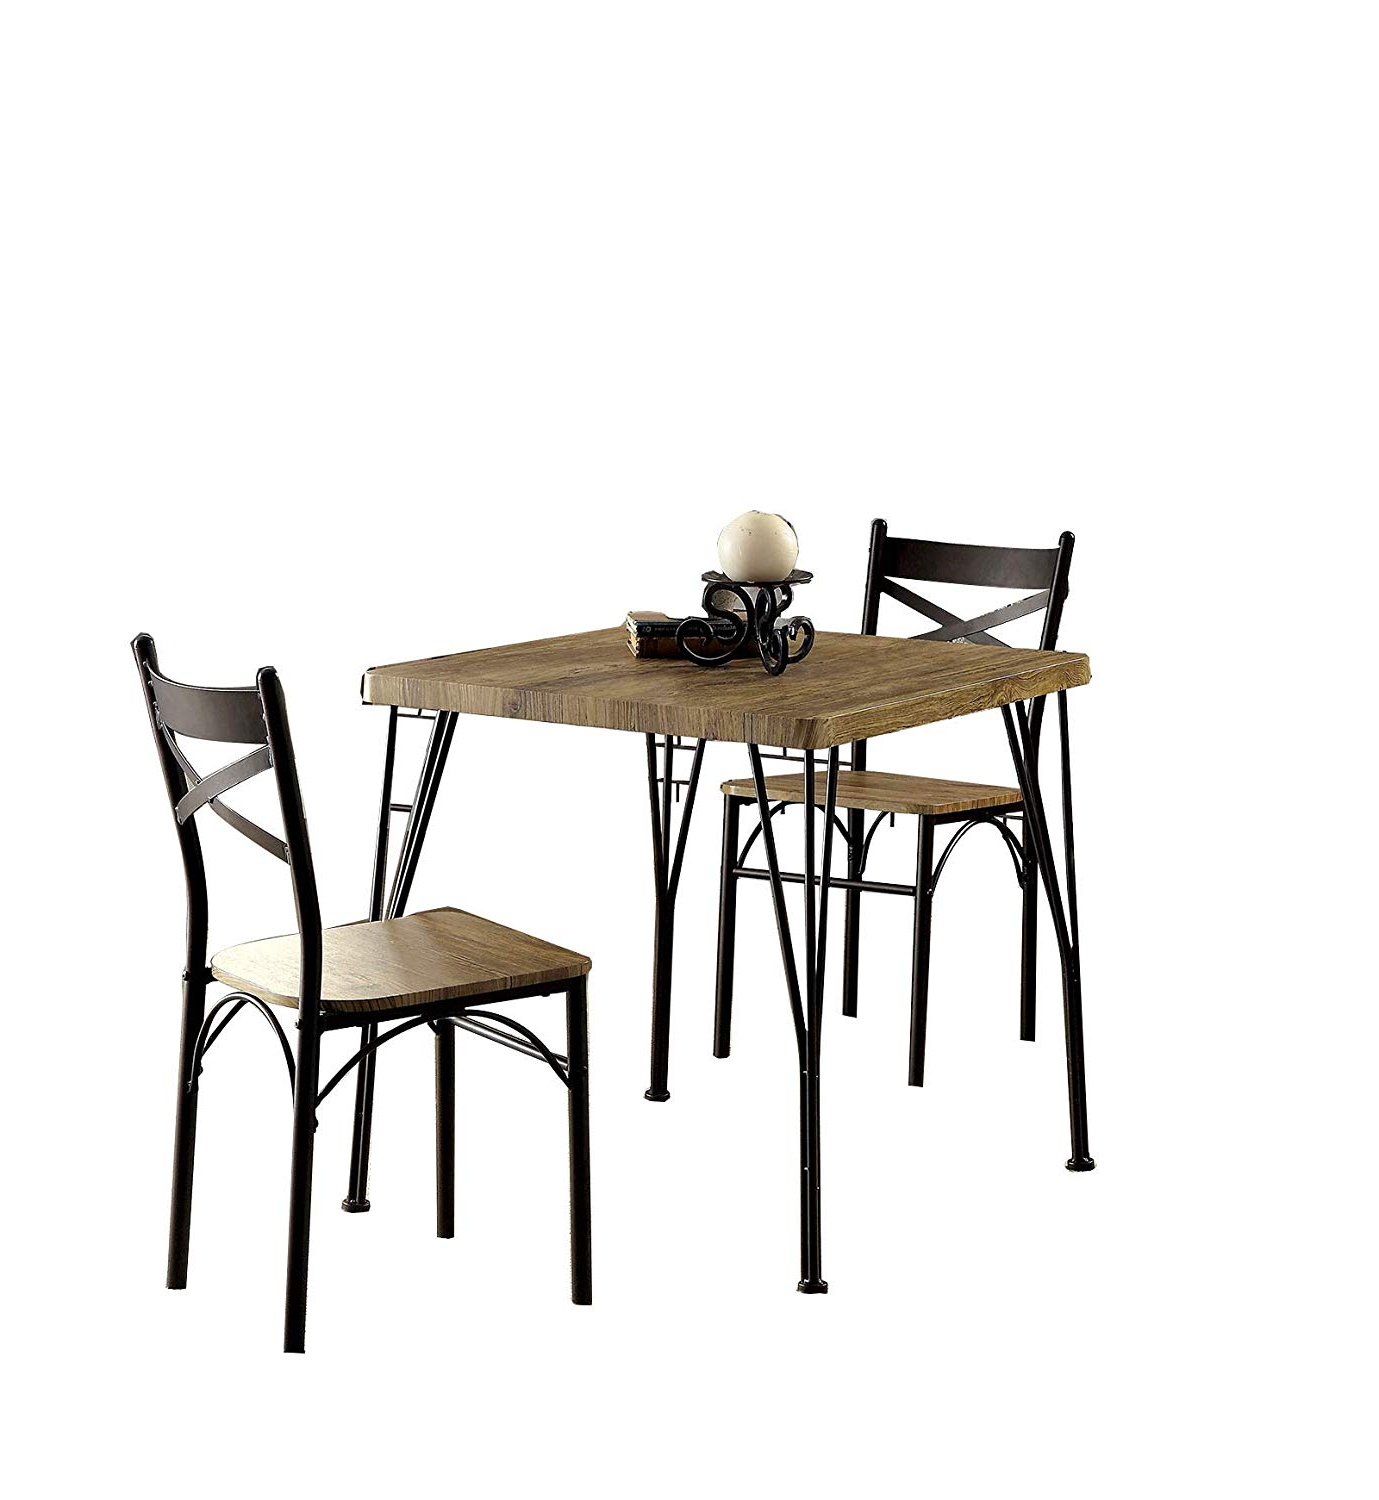 Cargo 5 Piece Dining Sets Regarding Trendy Benzara Bm119853 Industrial Style 3 Piece Dining Table Set Of Wood And  Metal, Brown And Black (View 8 of 20)